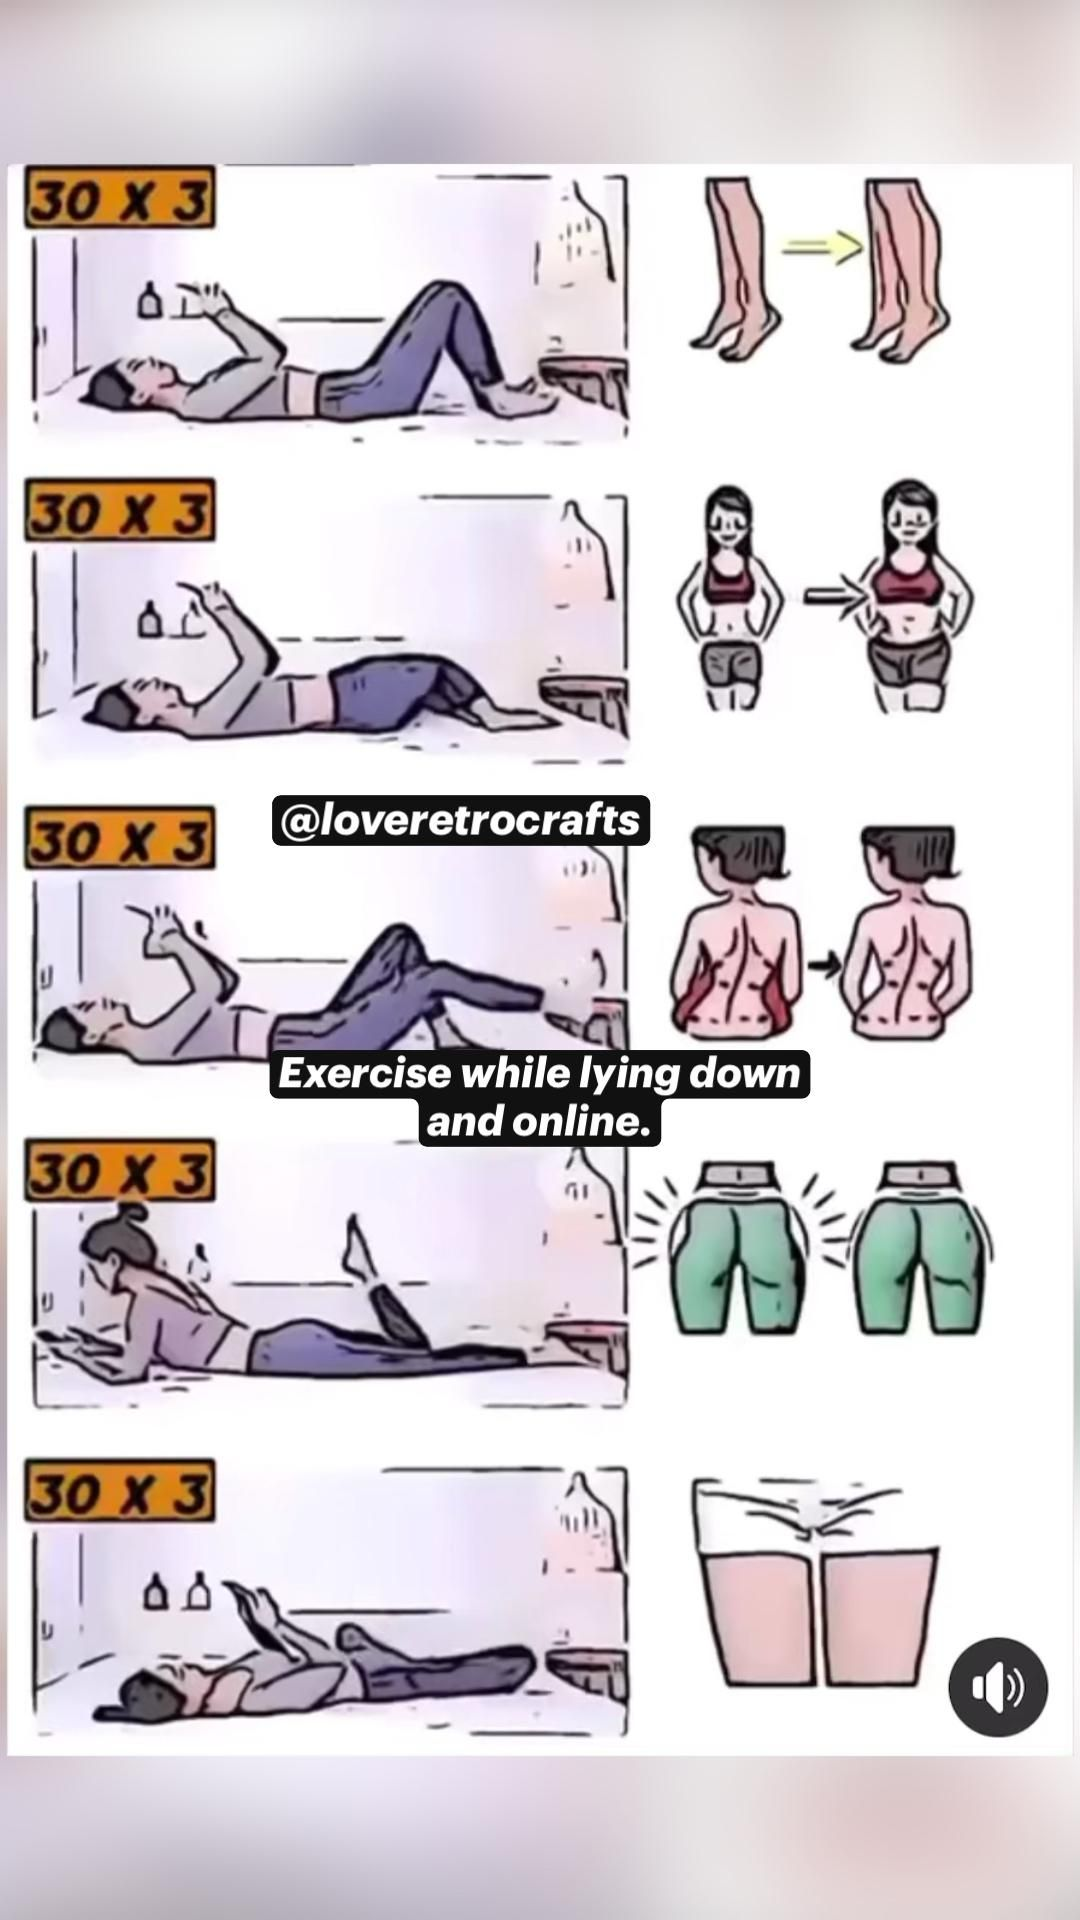 Exercise while lying down on your own bed